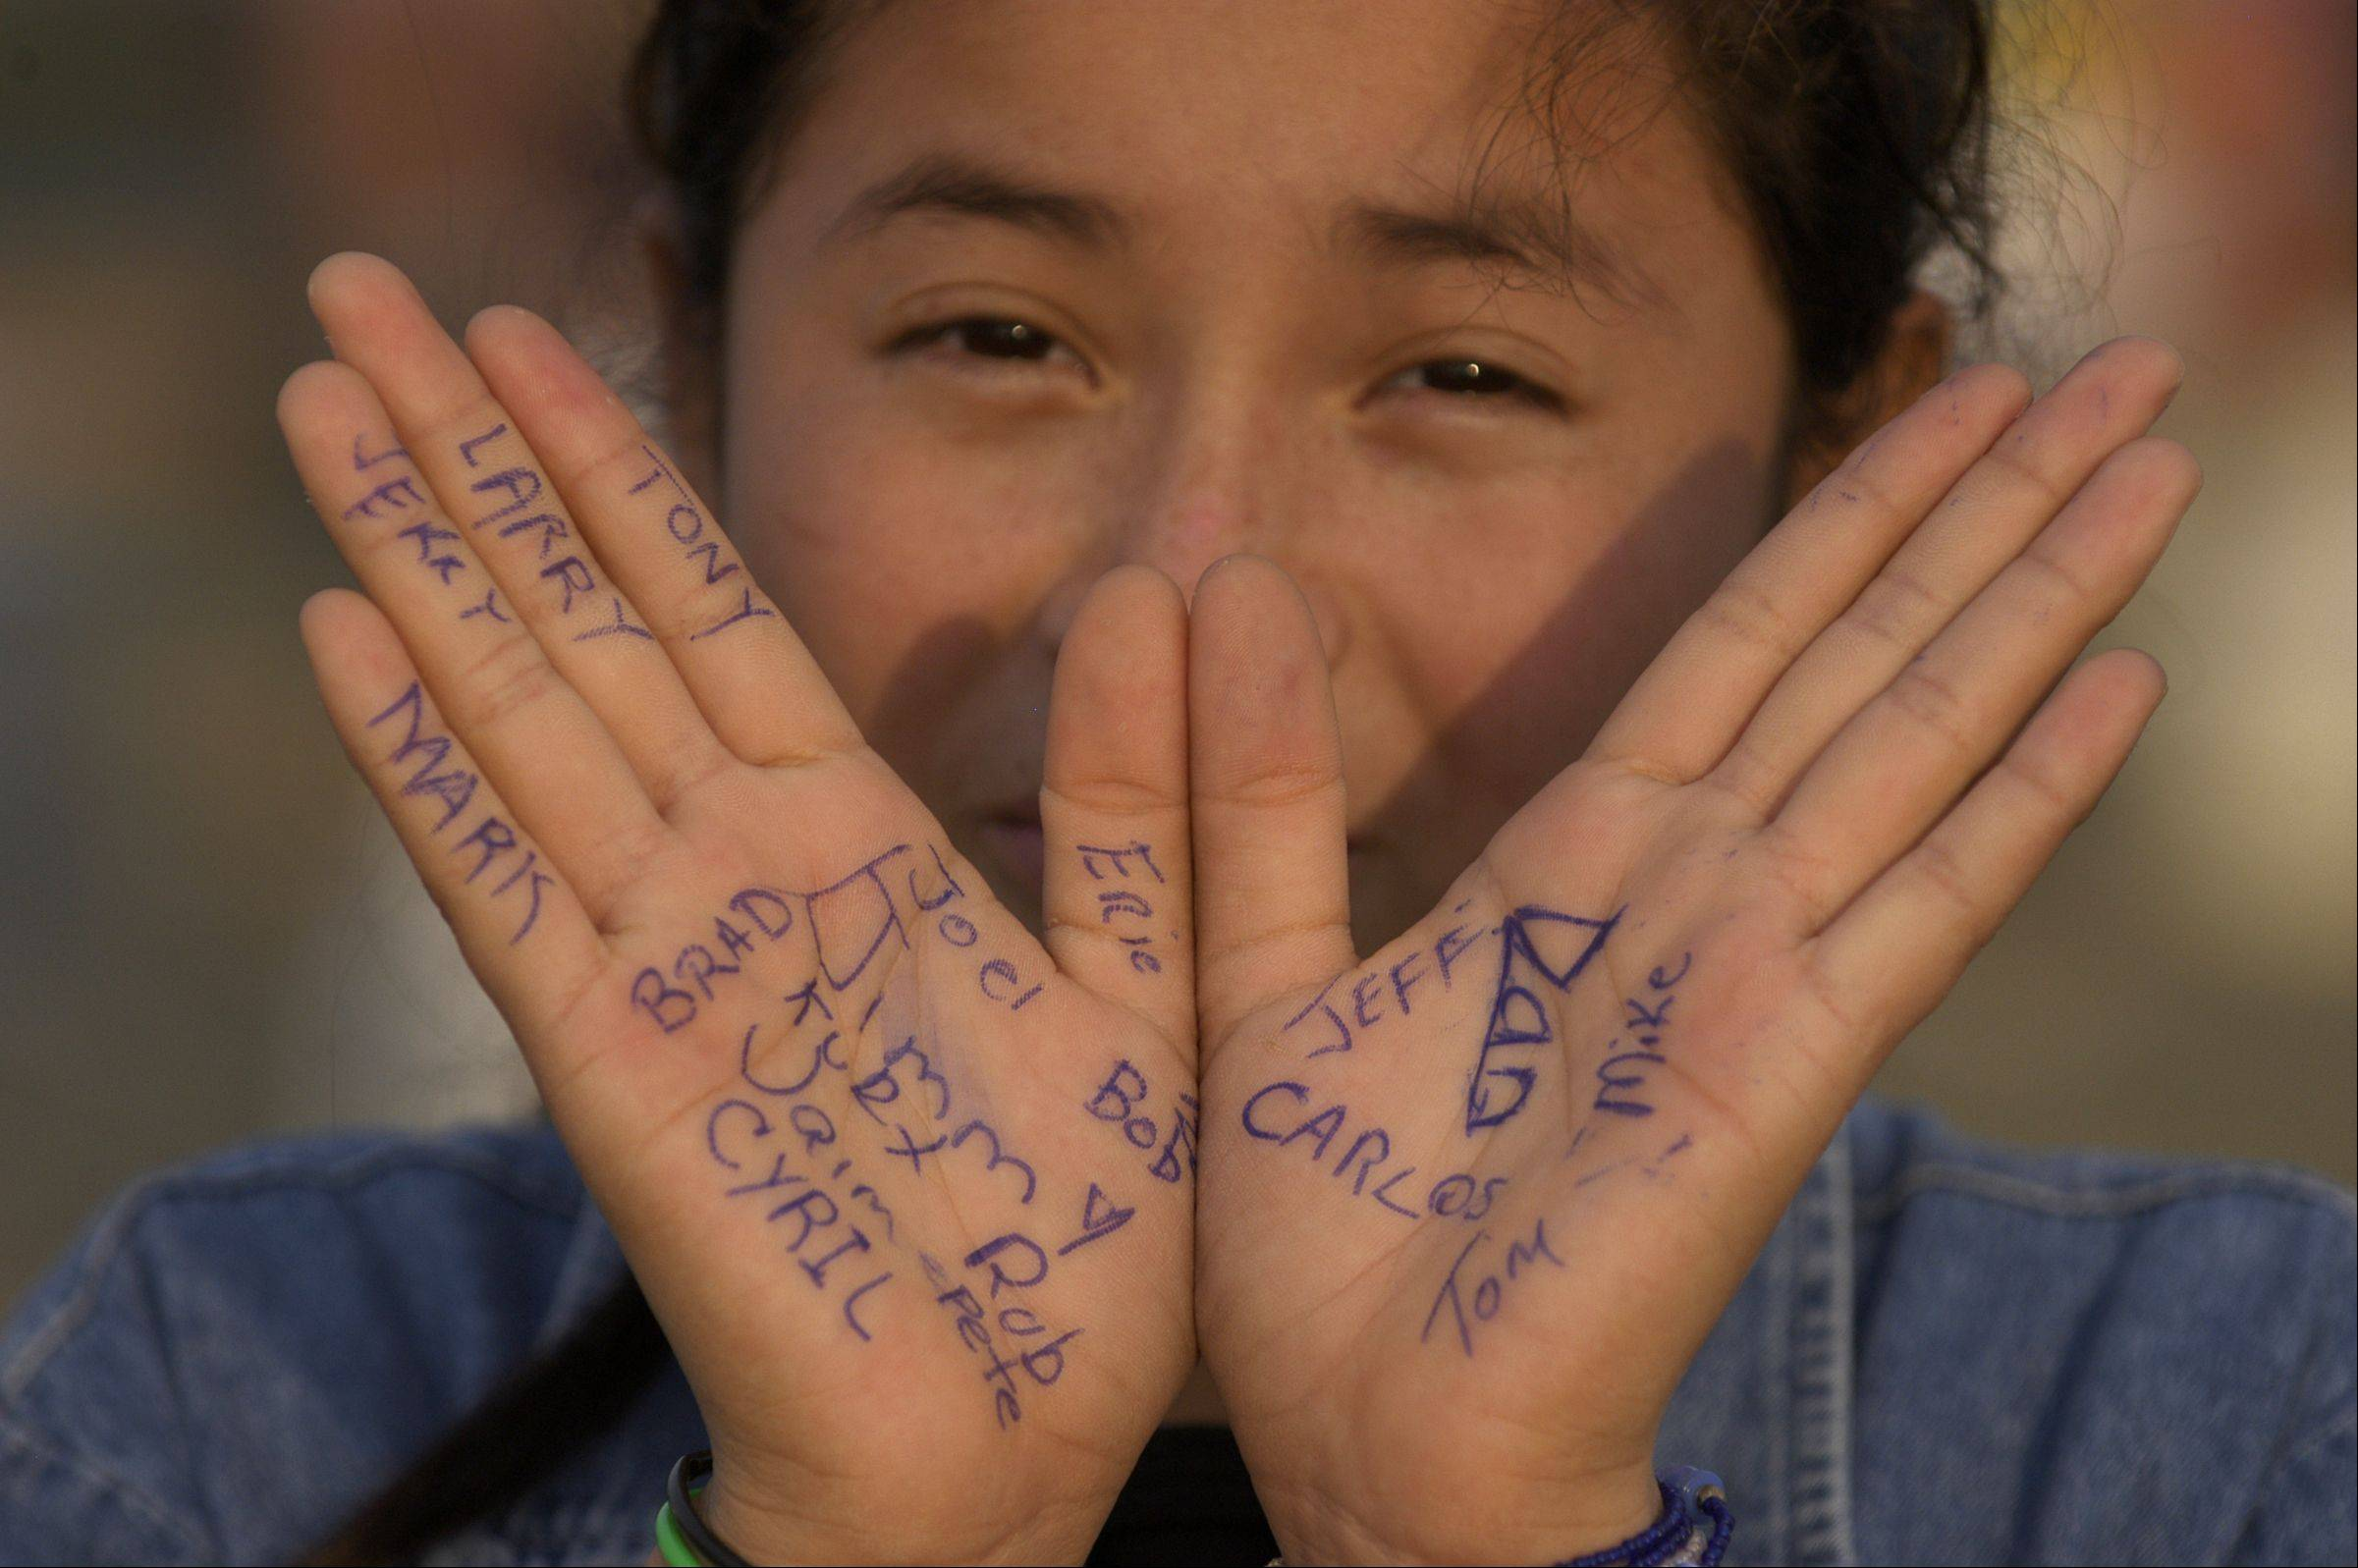 A young girl in Acuna, Mexico holds up her hands filled with the names of the men who built her family a new house. Jeff Knox was one of them.